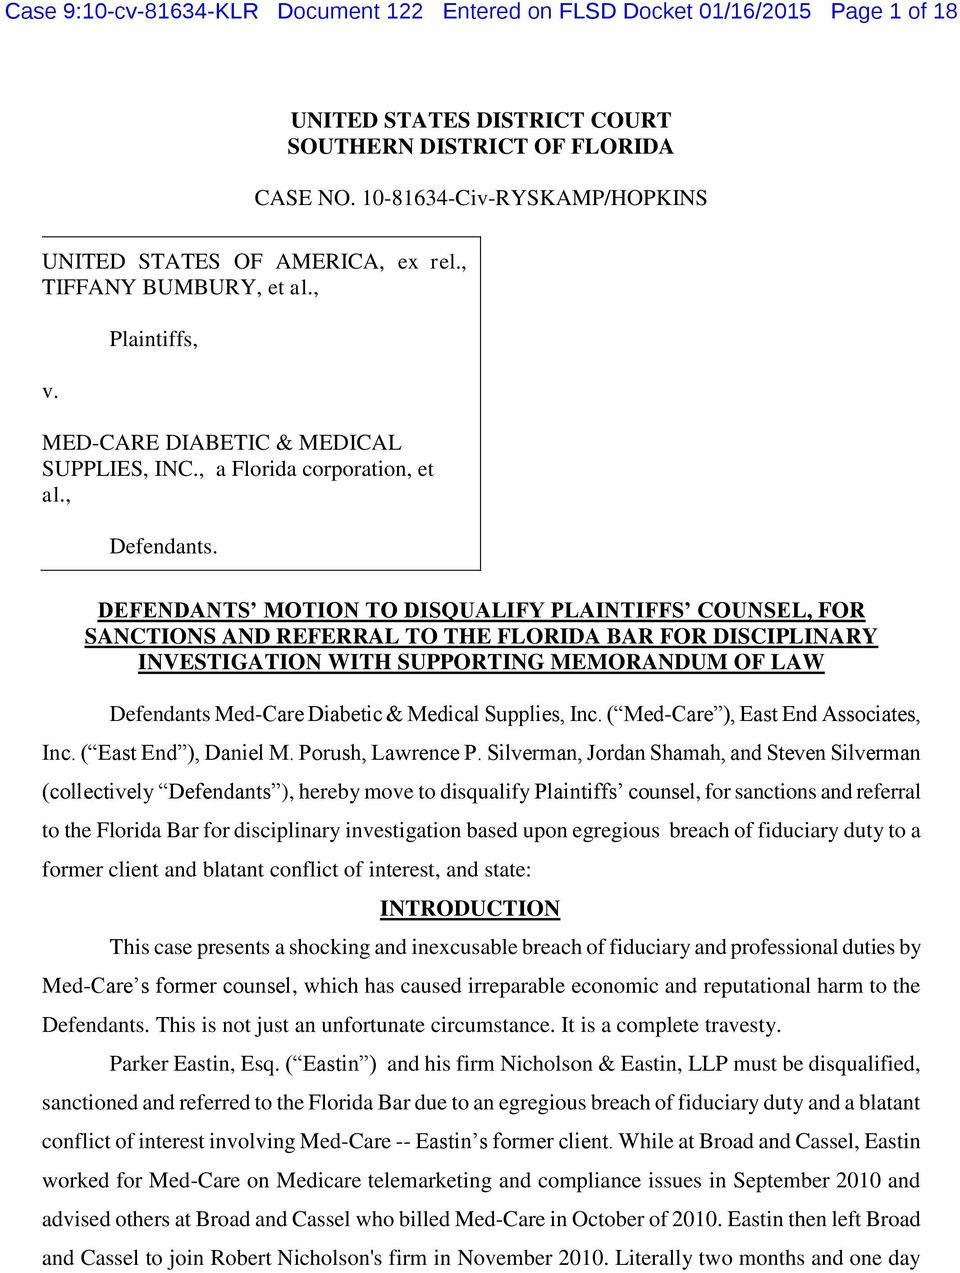 DEFENDANTS MOTION TO DISQUALIFY PLAINTIFFS COUNSEL, FOR SANCTIONS AND REFERRAL TO THE FLORIDA BAR FOR DISCIPLINARY INVESTIGATION WITH SUPPORTING MEMORANDUM OF LAW Defendants Med-Care Diabetic &